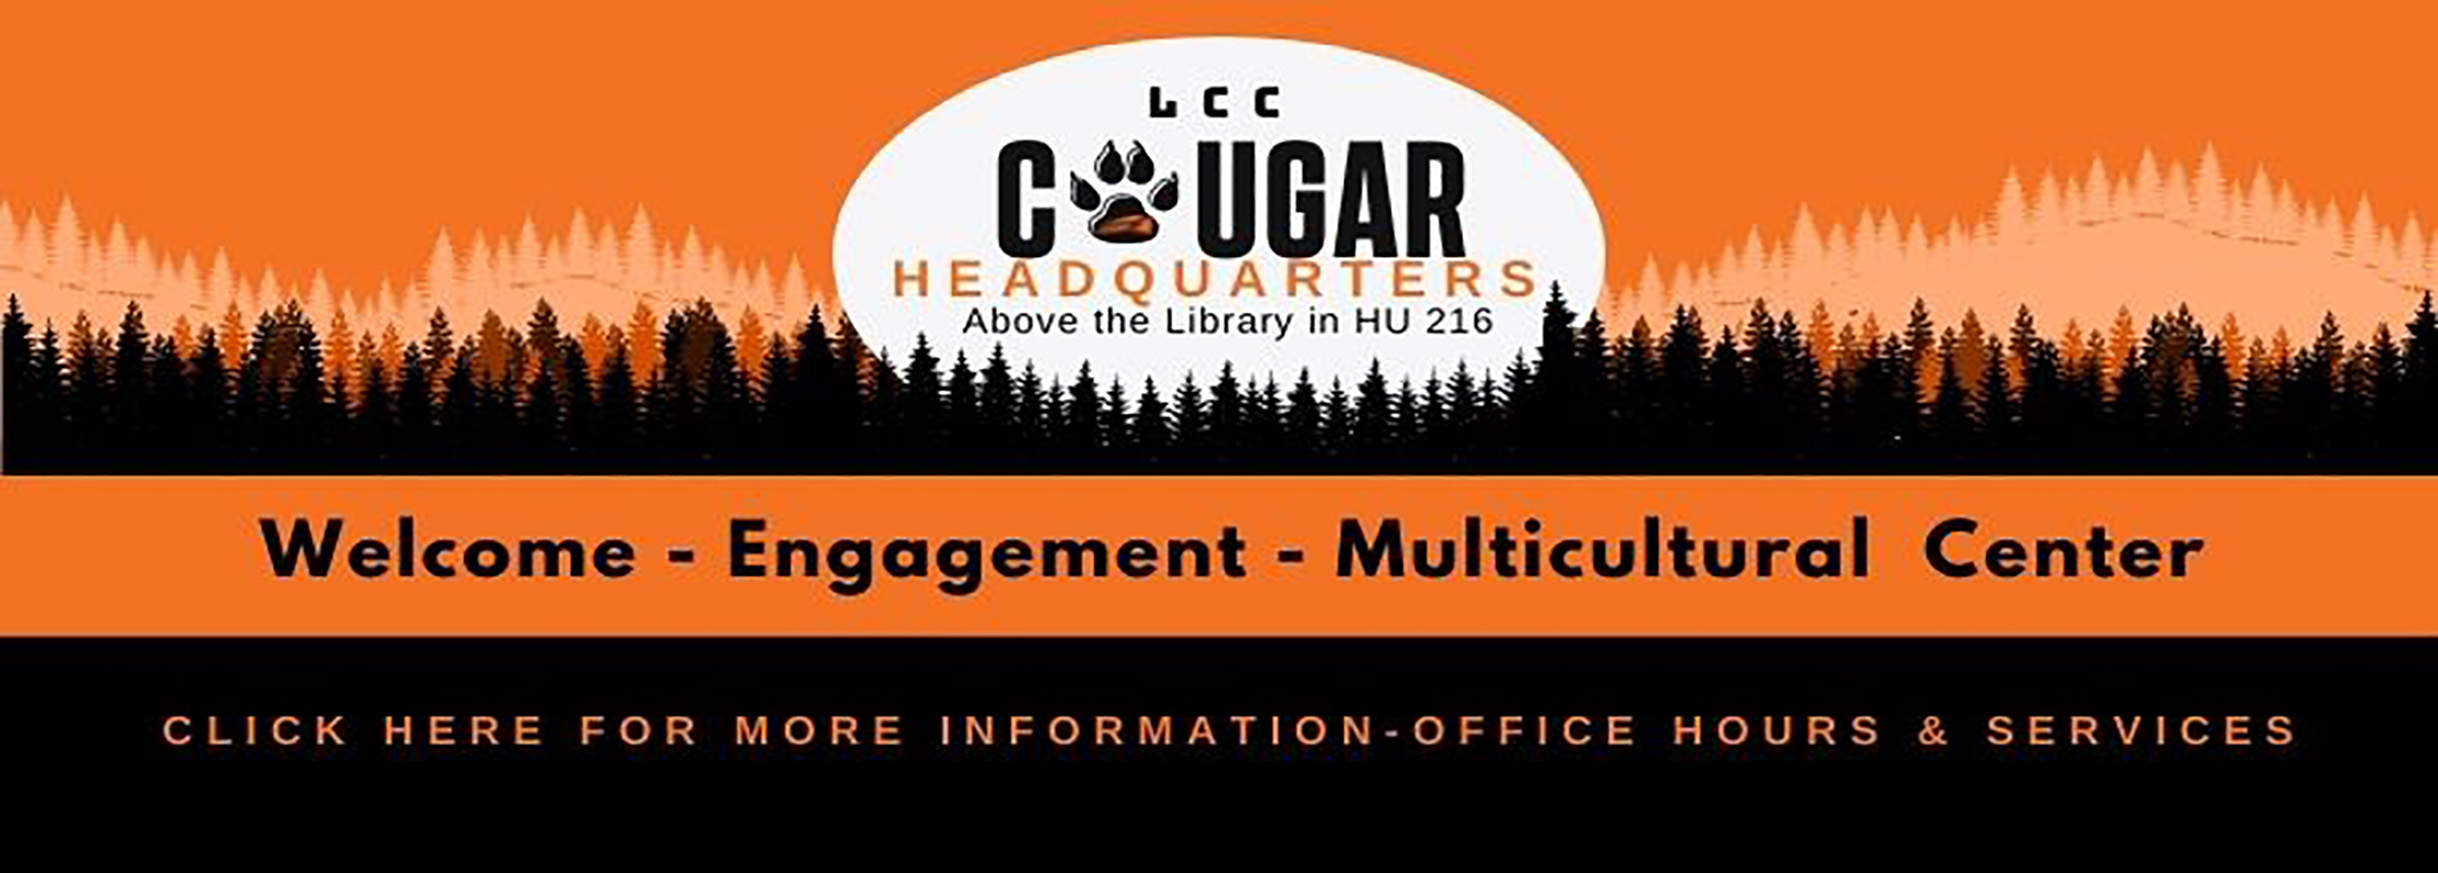 Get help at LCC's Welcome Center in Humanities Building Monday, Wednesday, and Thurusday 8:30am - 4:00pm